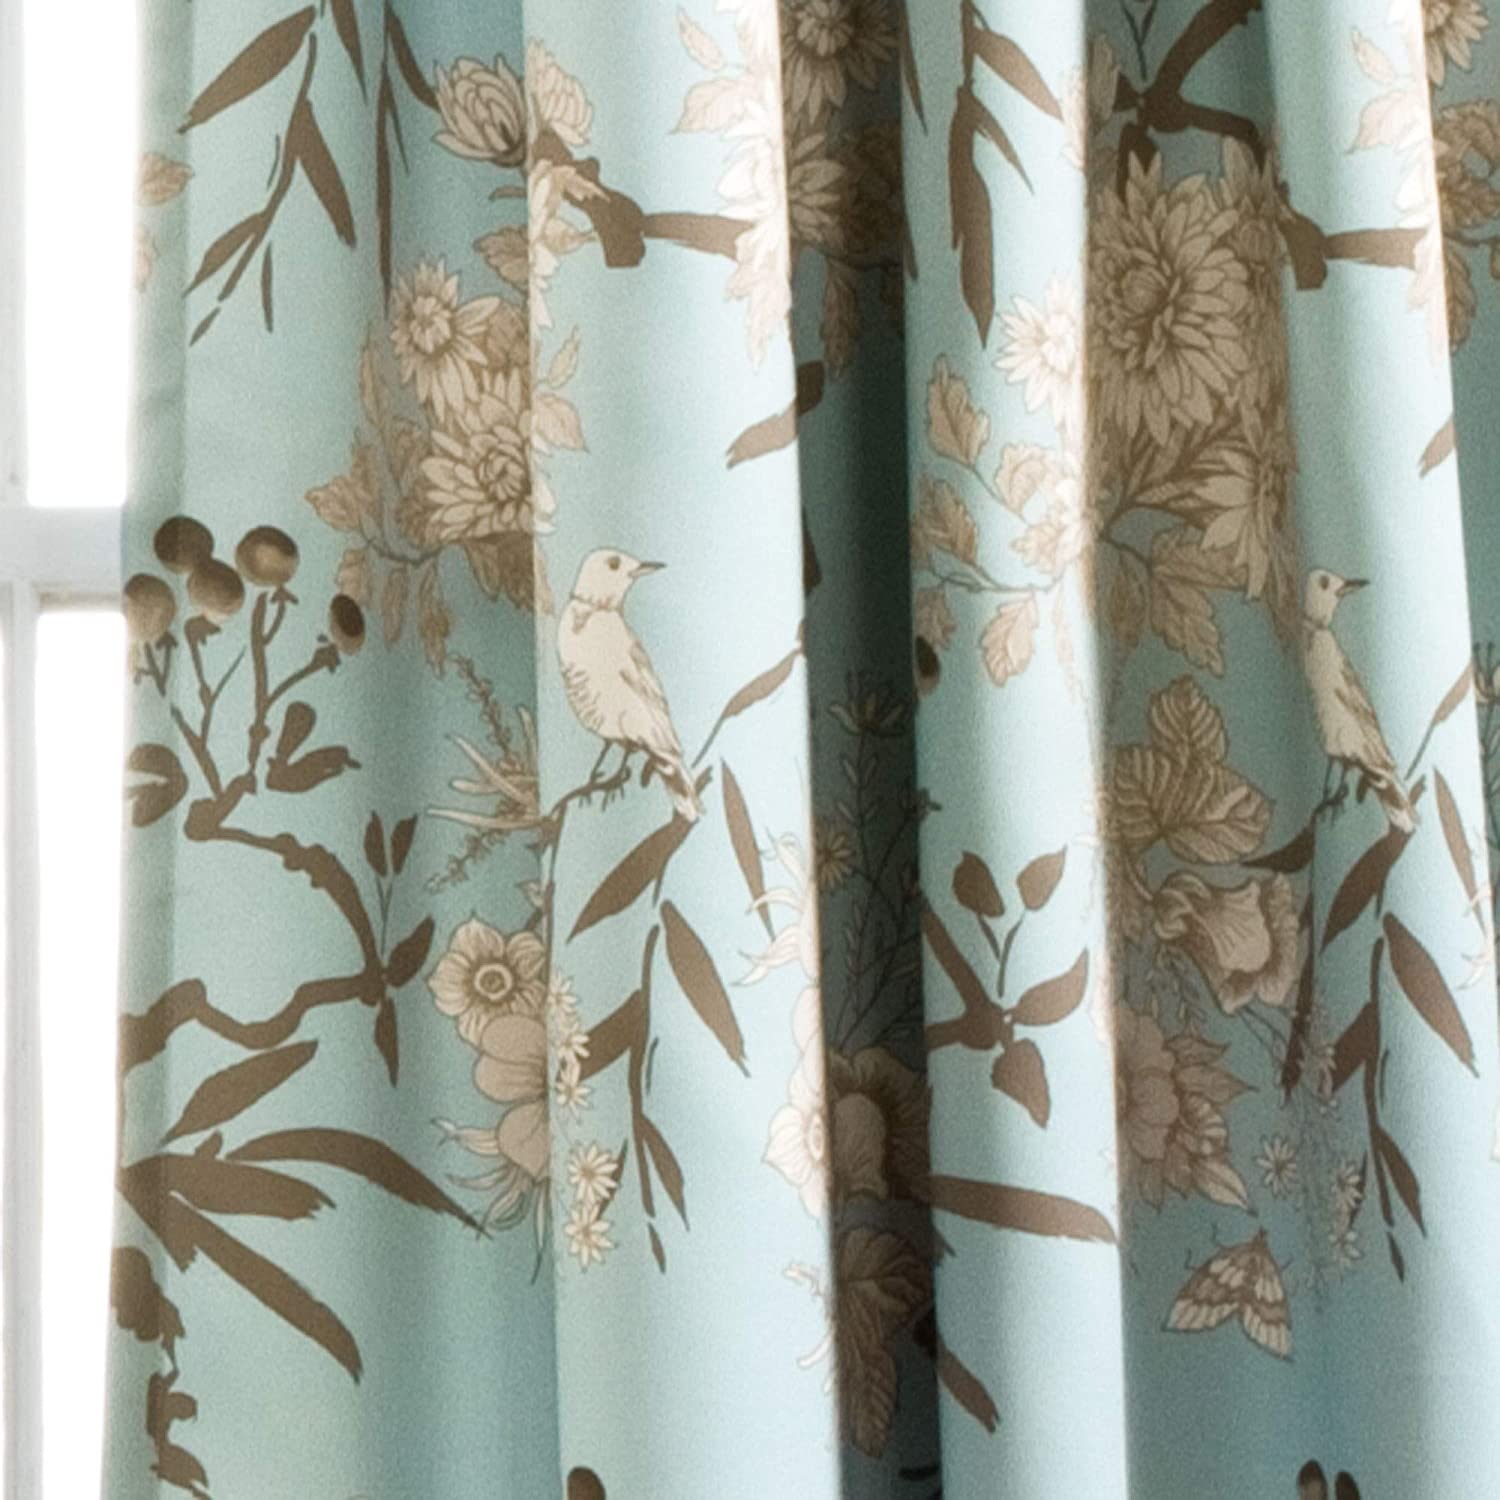 Floral Custom Curtain Panel by Spoonflower Birds Curtain Panel Green Birds by lydia/_meiying